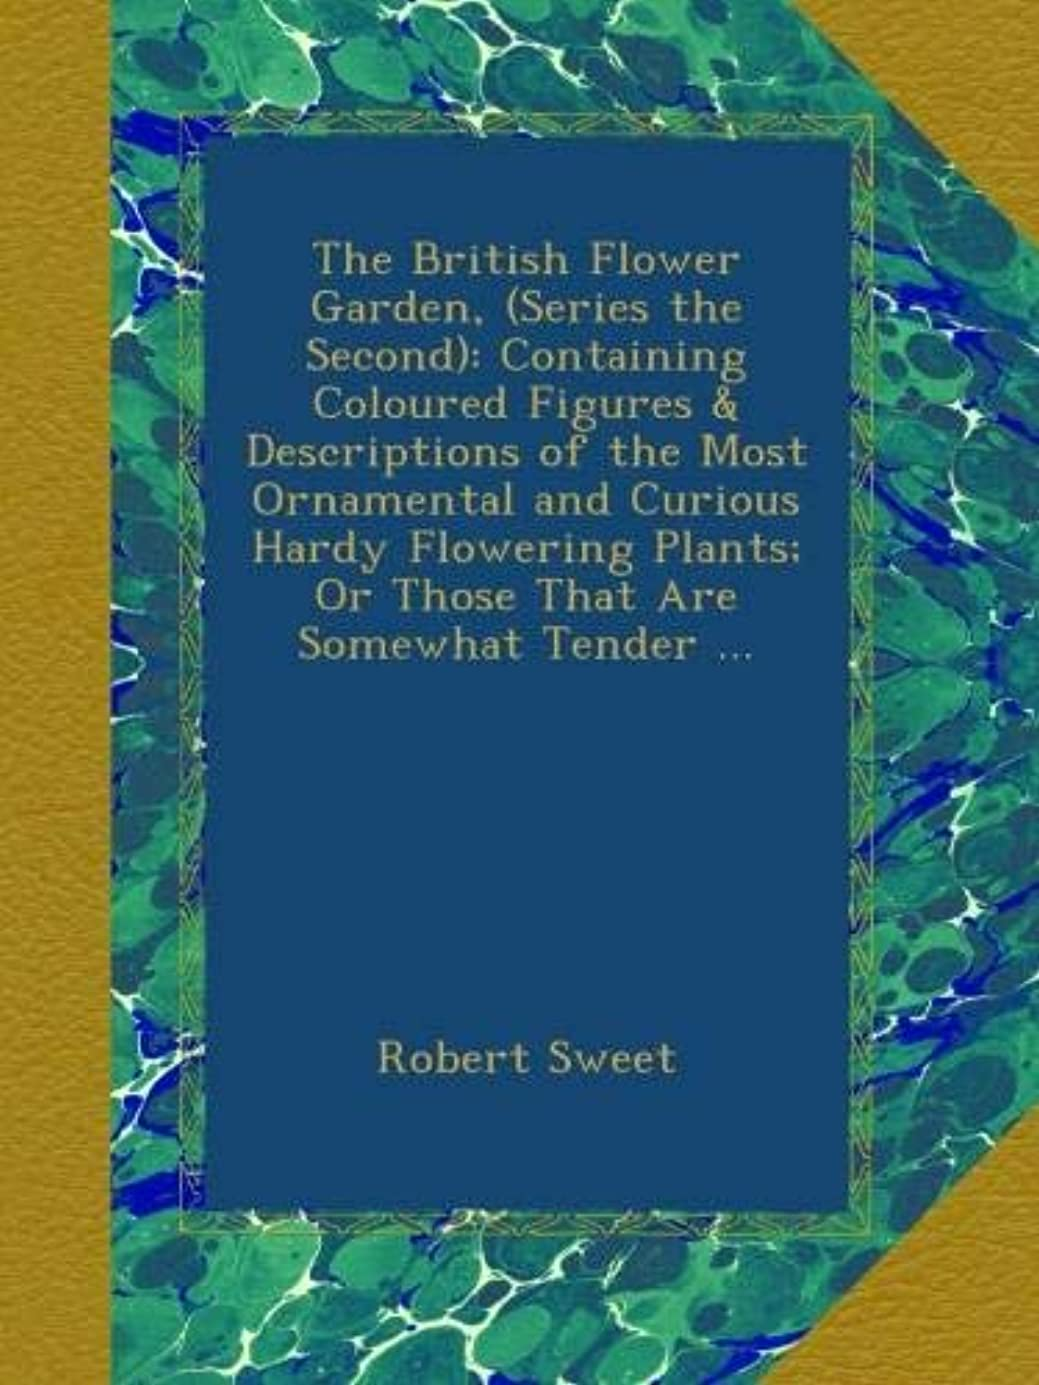 殺す規模れんがThe British Flower Garden, (Series the Second): Containing Coloured Figures & Descriptions of the Most Ornamental and Curious Hardy Flowering Plants; Or Those That Are Somewhat Tender ...